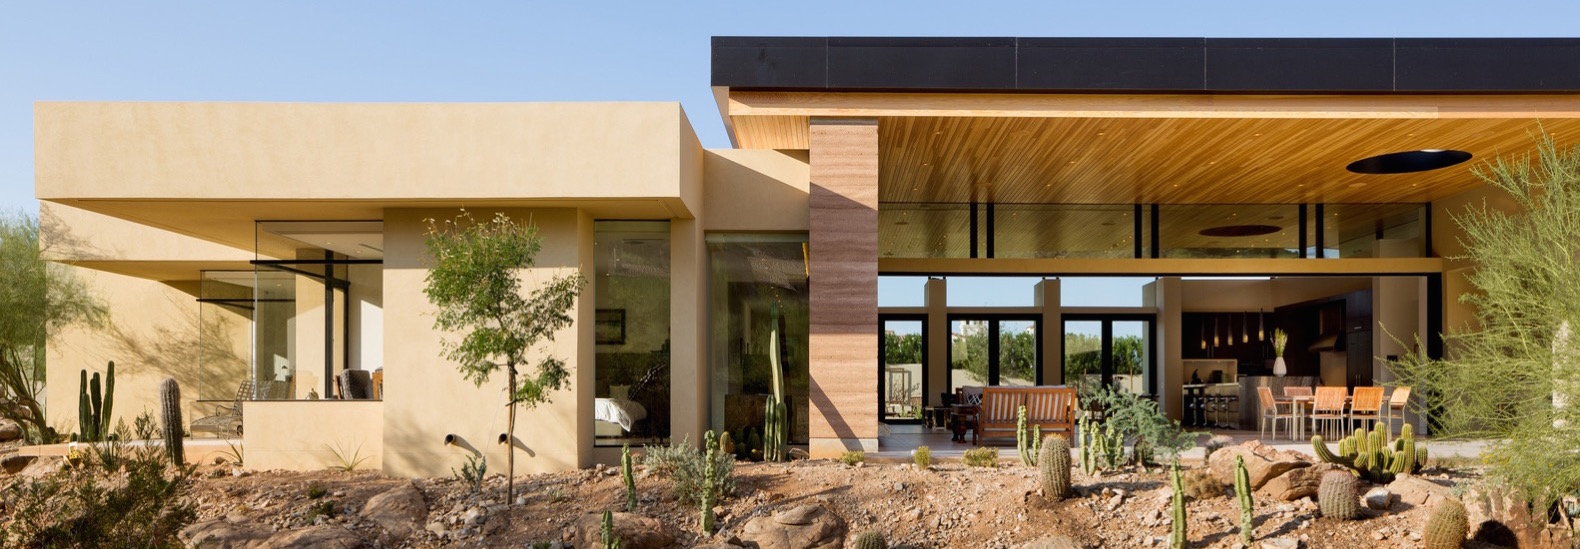 Rammed earth walls tie modern home to the desert landscape on roof house designs, architectural house designs, log house designs, cement house designs, permaculture house designs, shipping containers house designs, cob house designs, green architecture house designs, eco-block house designs, earth sheltered house designs, masonry house designs, adobe house designs, mud house designs, house house designs, hydraform house designs, adobe style homes designs, passive house designs, ferrocement house designs, construction house designs,